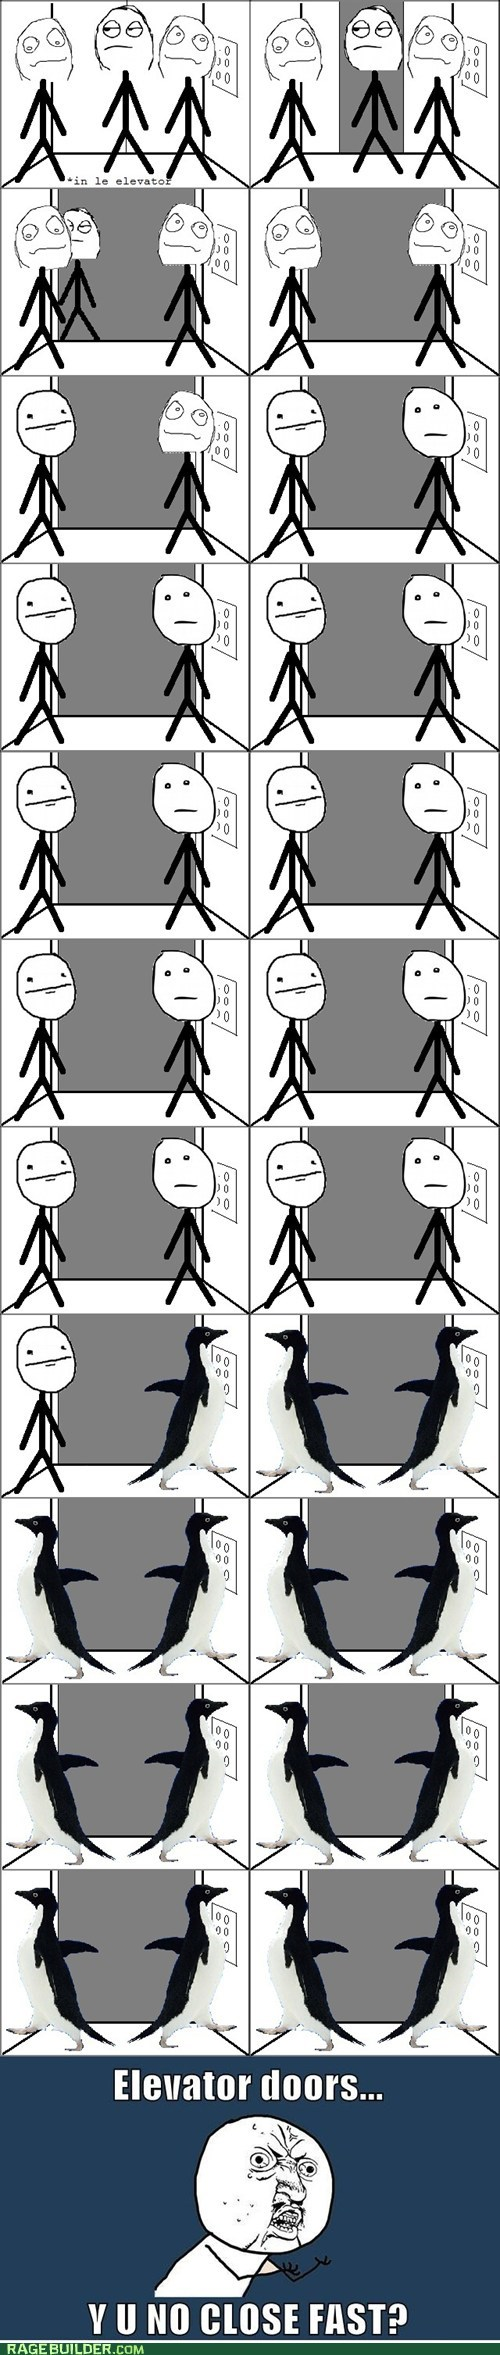 elevator poker face Rage Comics socially awkward penguin - 5671771904